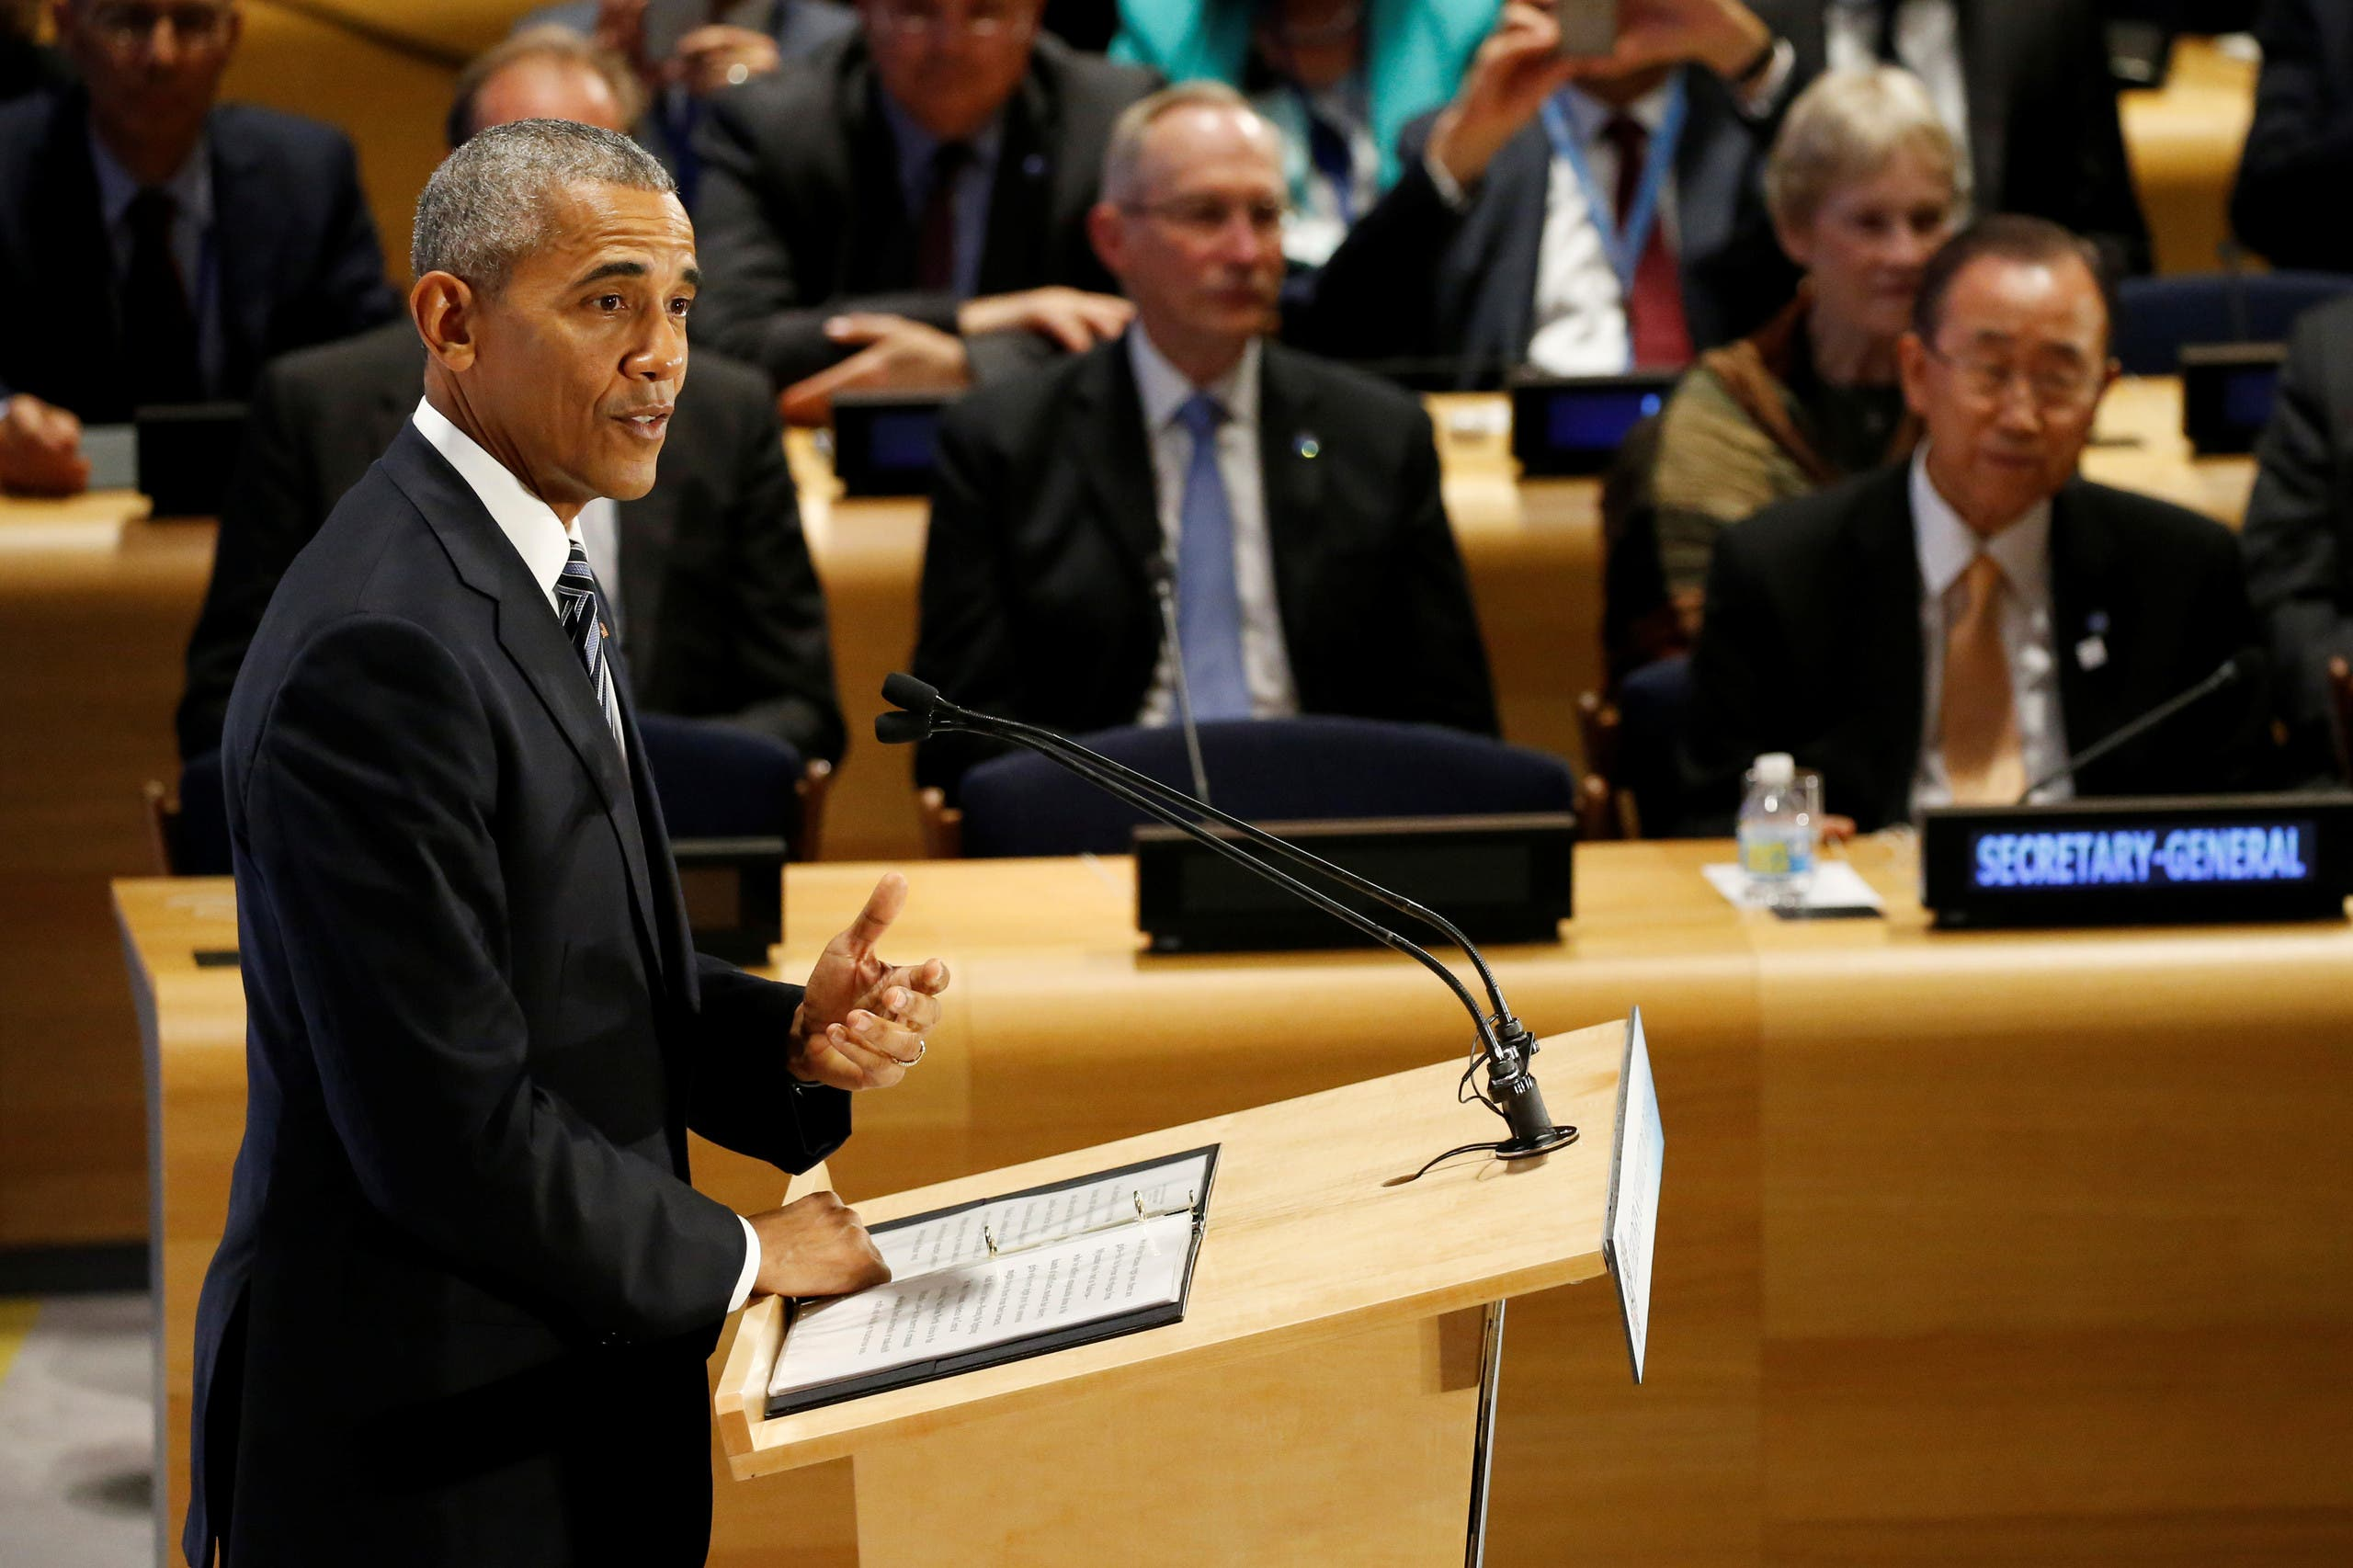 U.S. President Barack Obama speaks during a High Level Leaders Meeting on Refugees on the sidelines of the United Nations General Assembly at United Nations headquarters in New York City, U.S. September 20, 2016. REUTERS